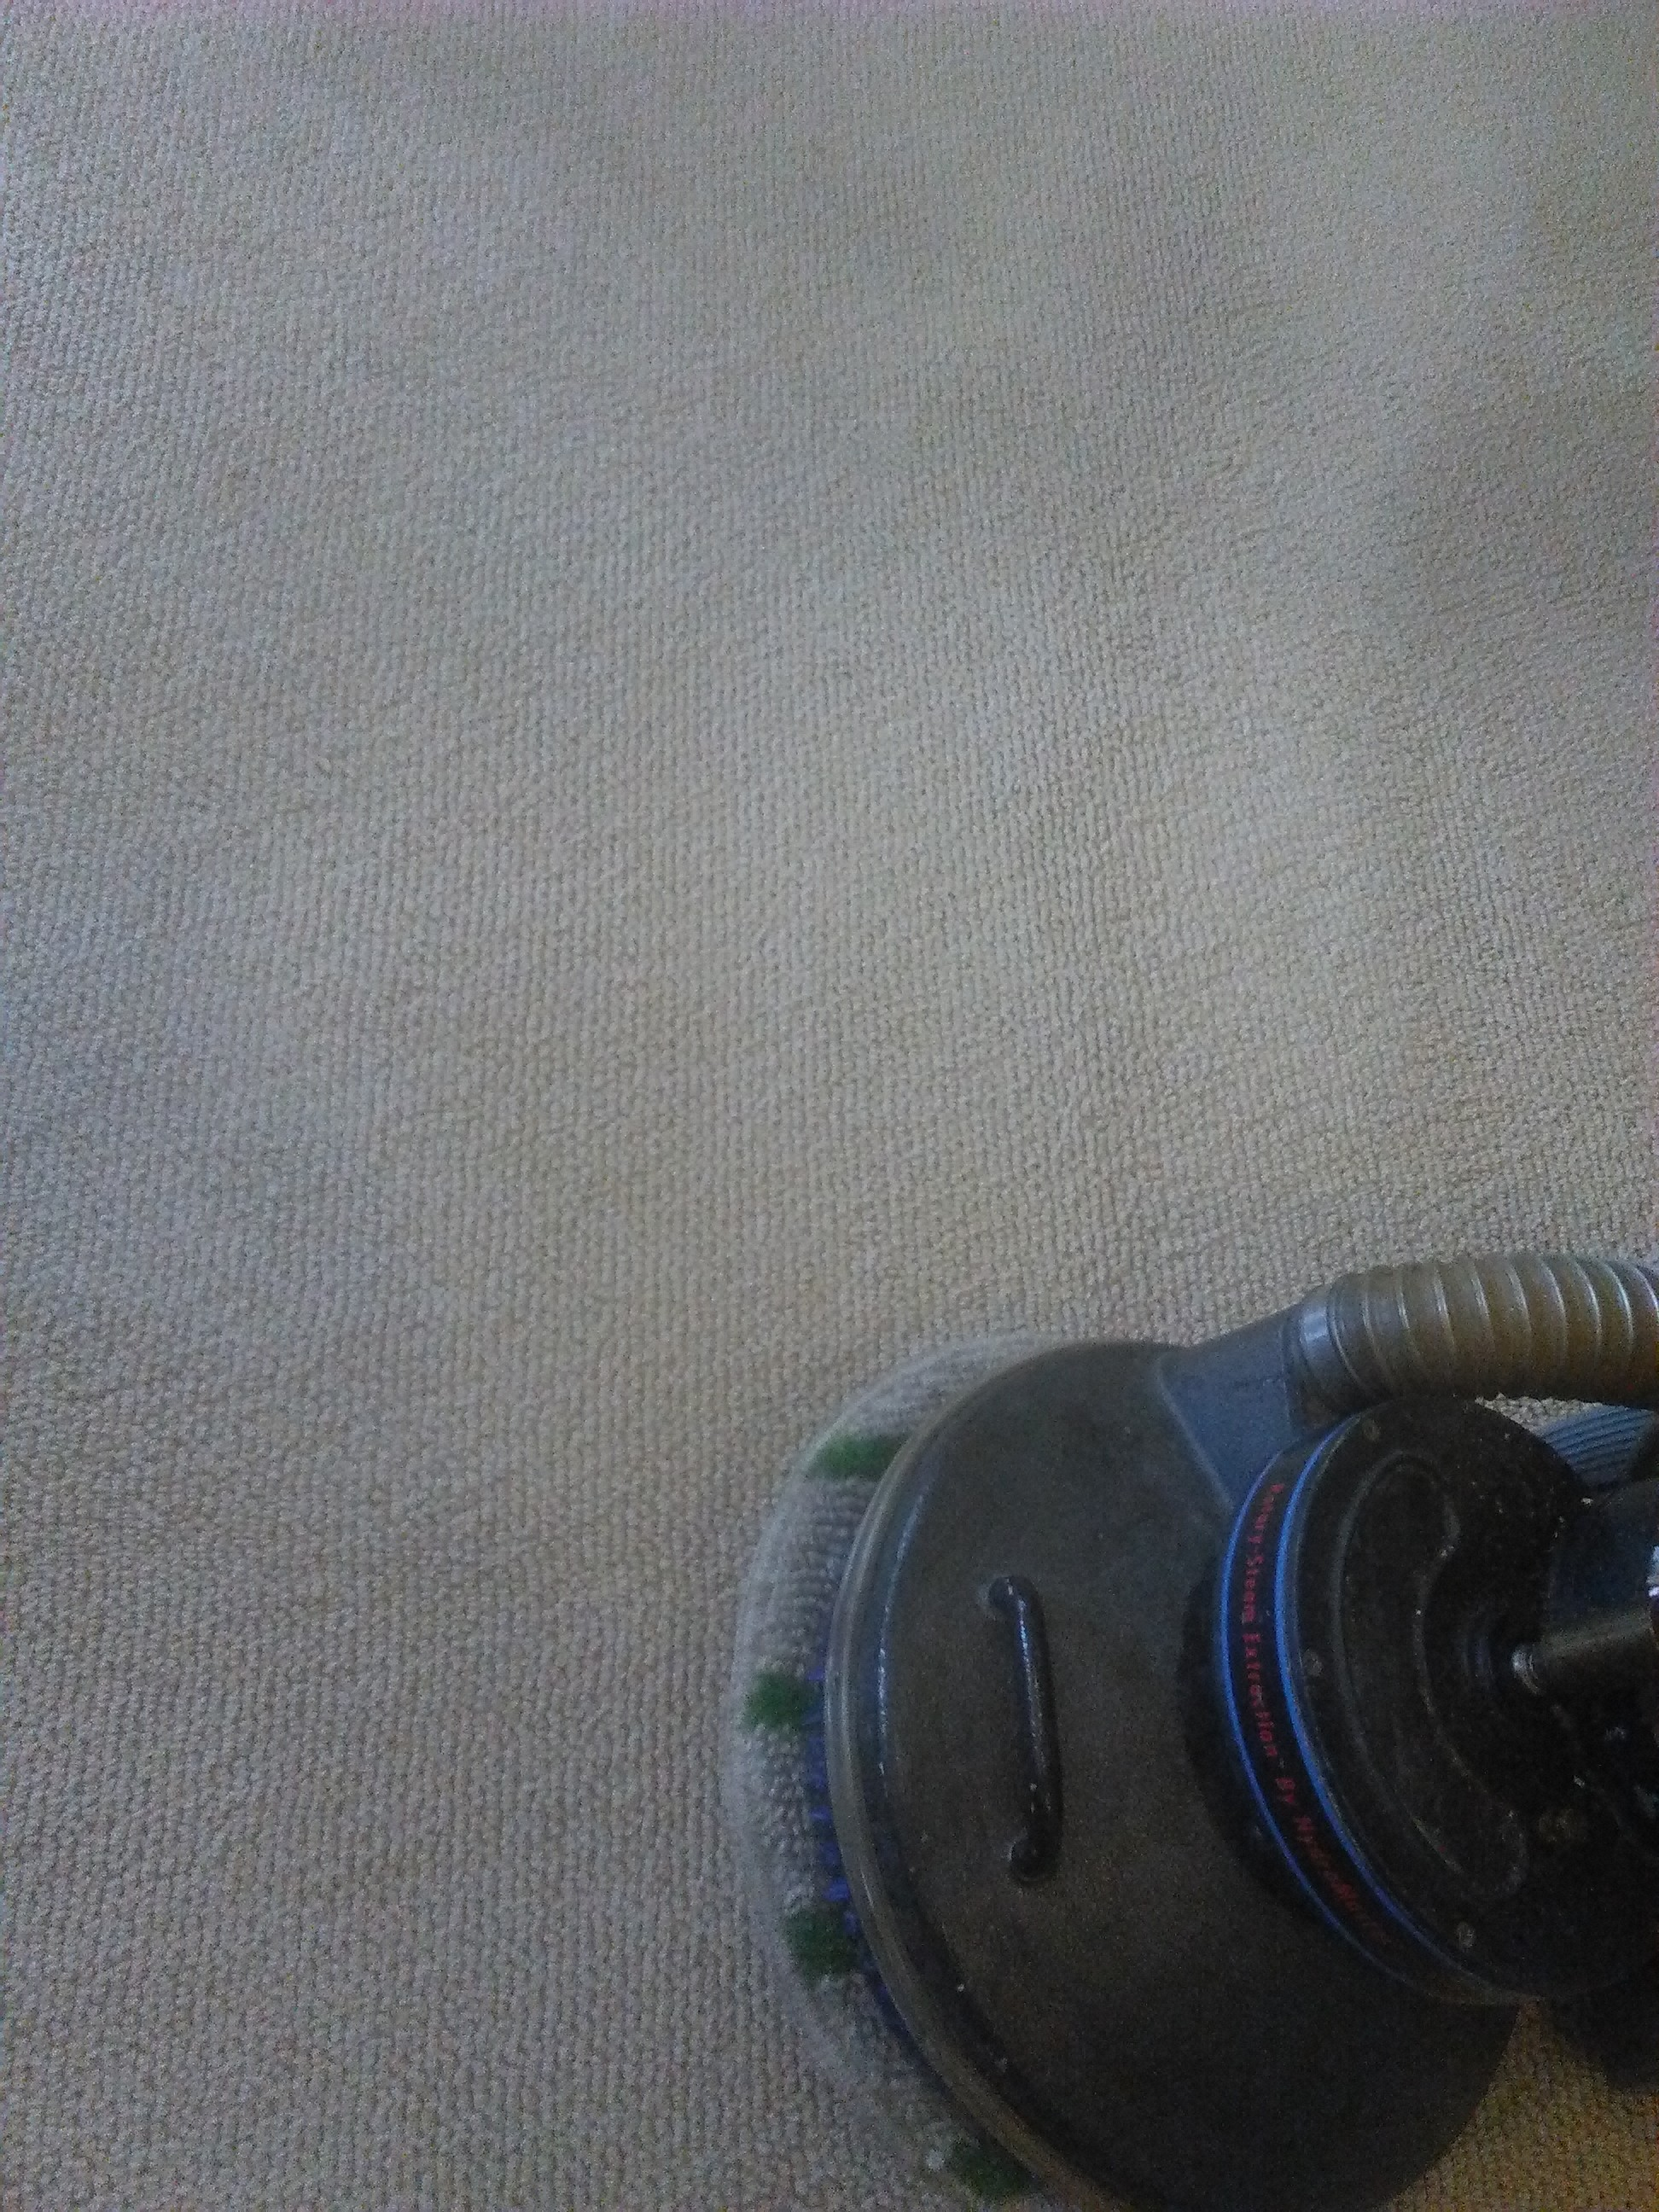 Carpet Cleaning San Jose California Two Birds Home